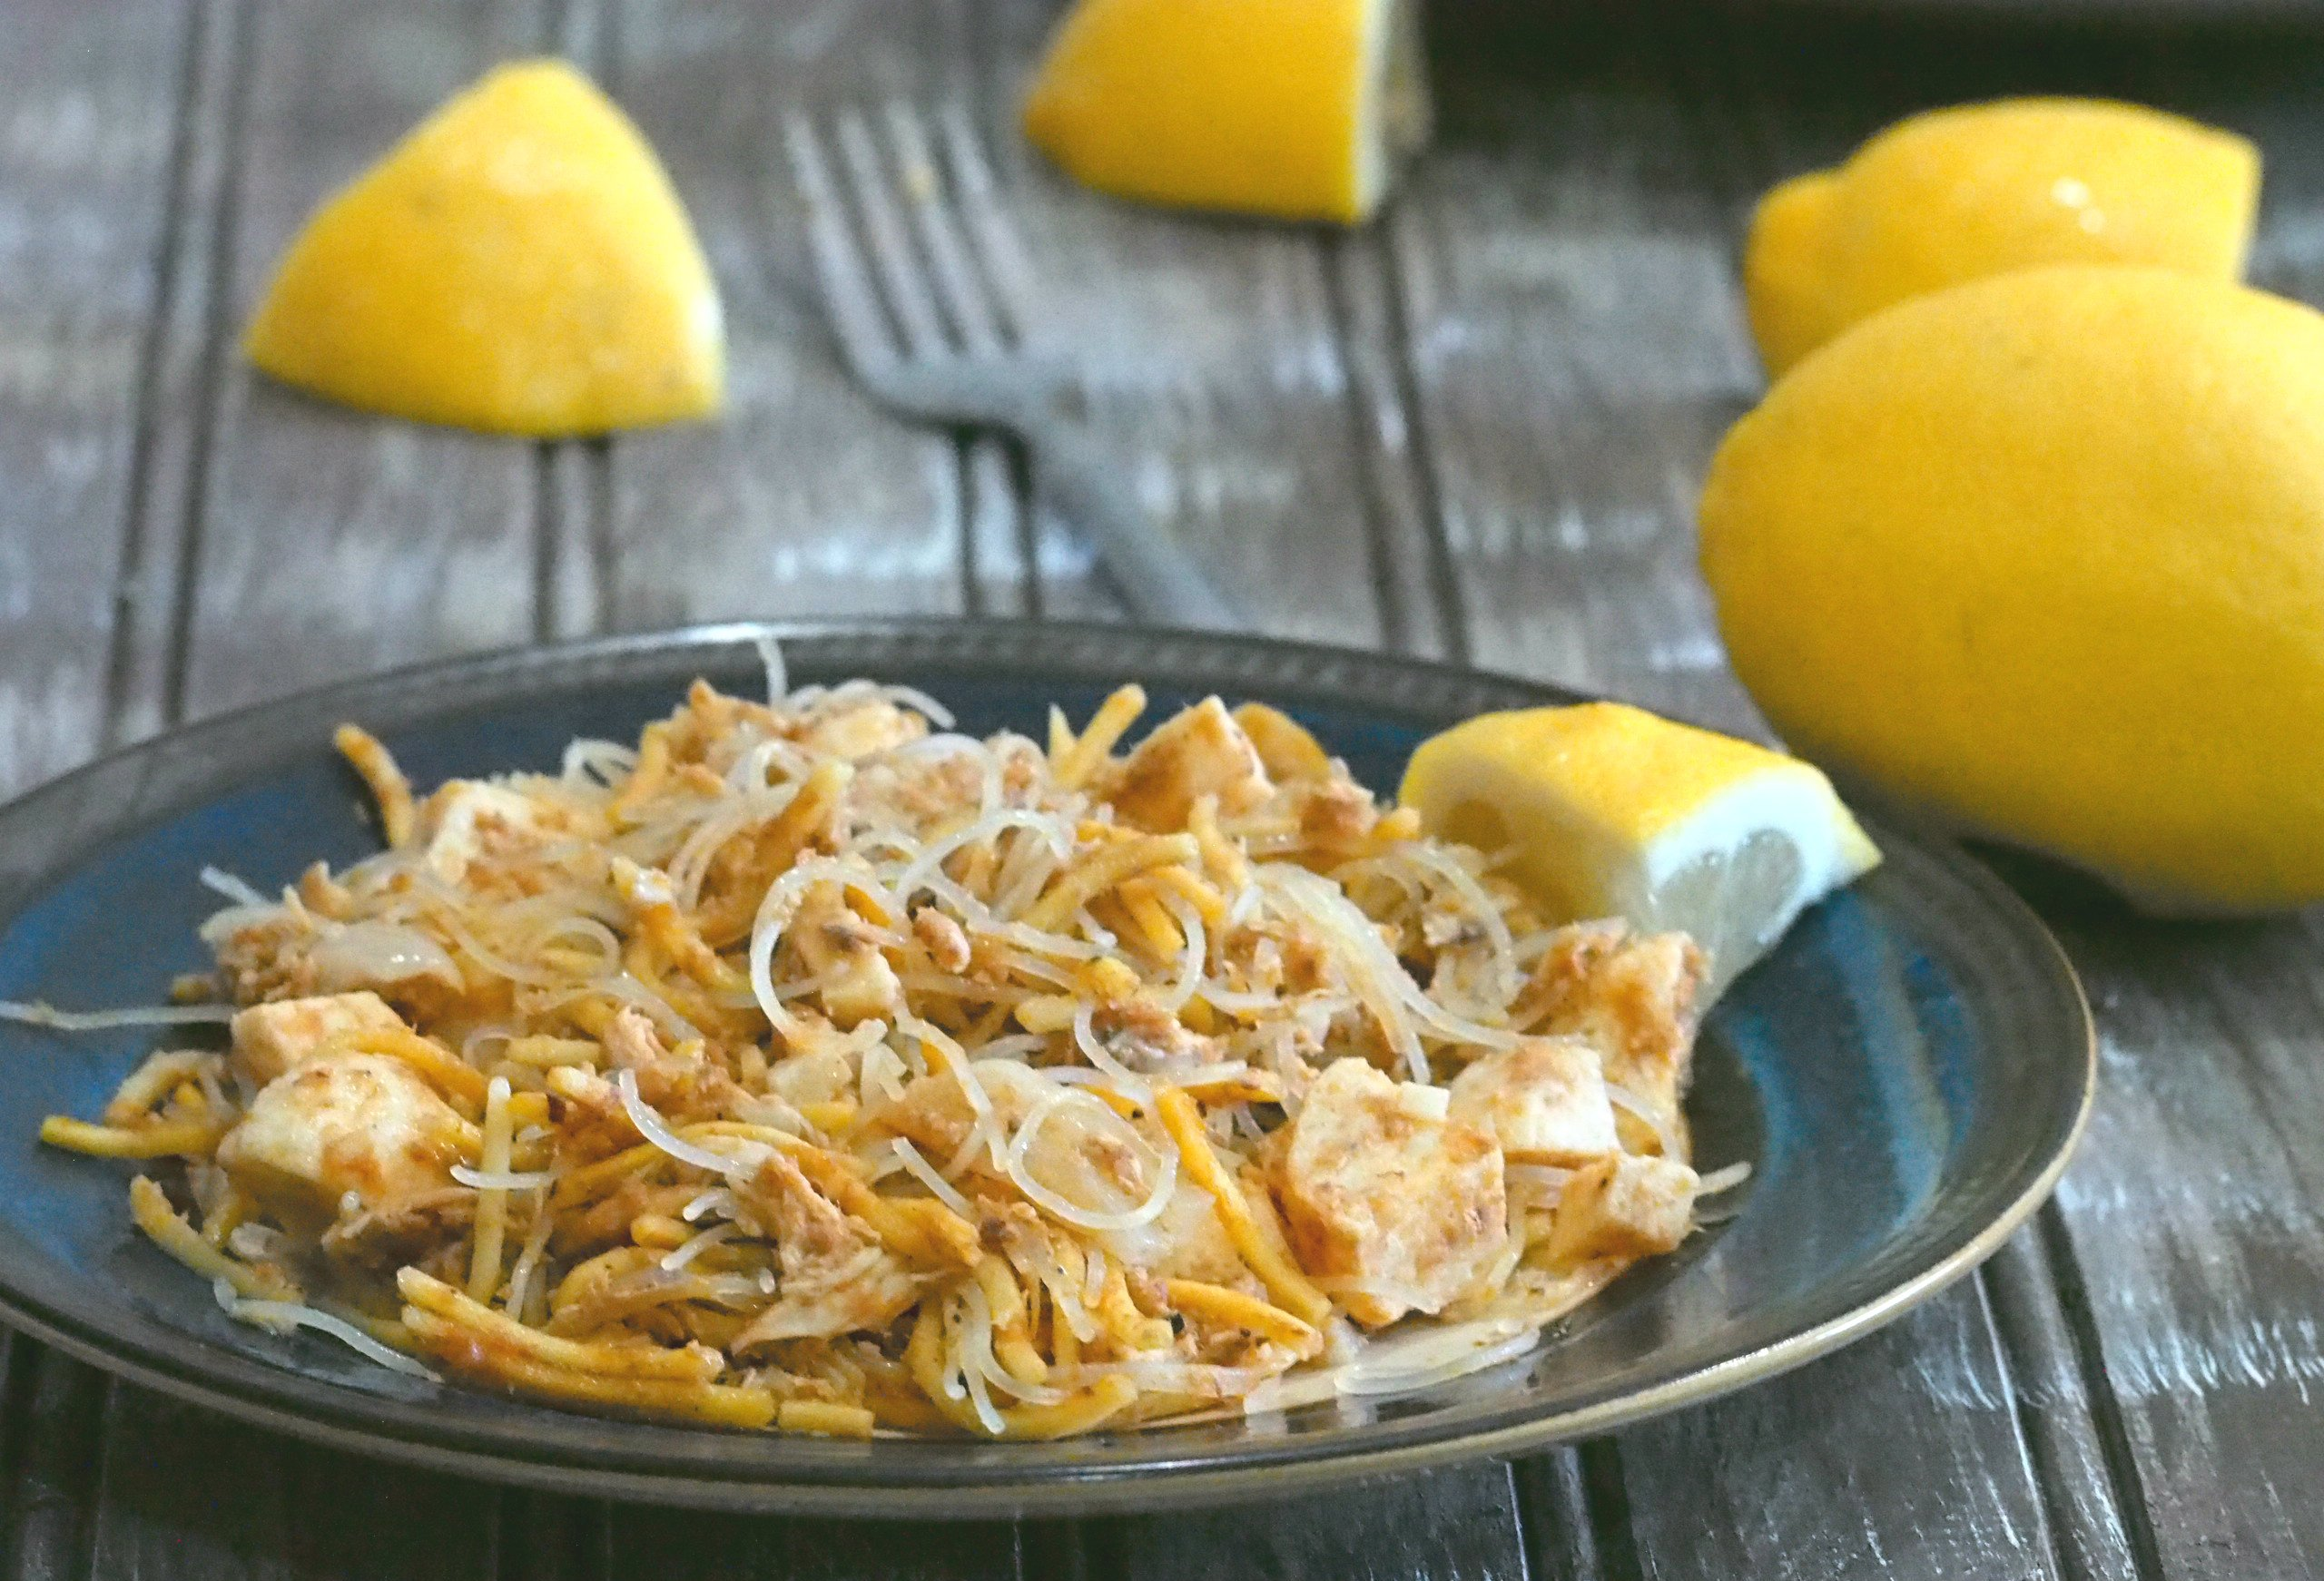 Using canned sardines as the main meat, Pancit sardinas is an easy but tasty variation to cook pancit, the very popular Filipino noodle dish.